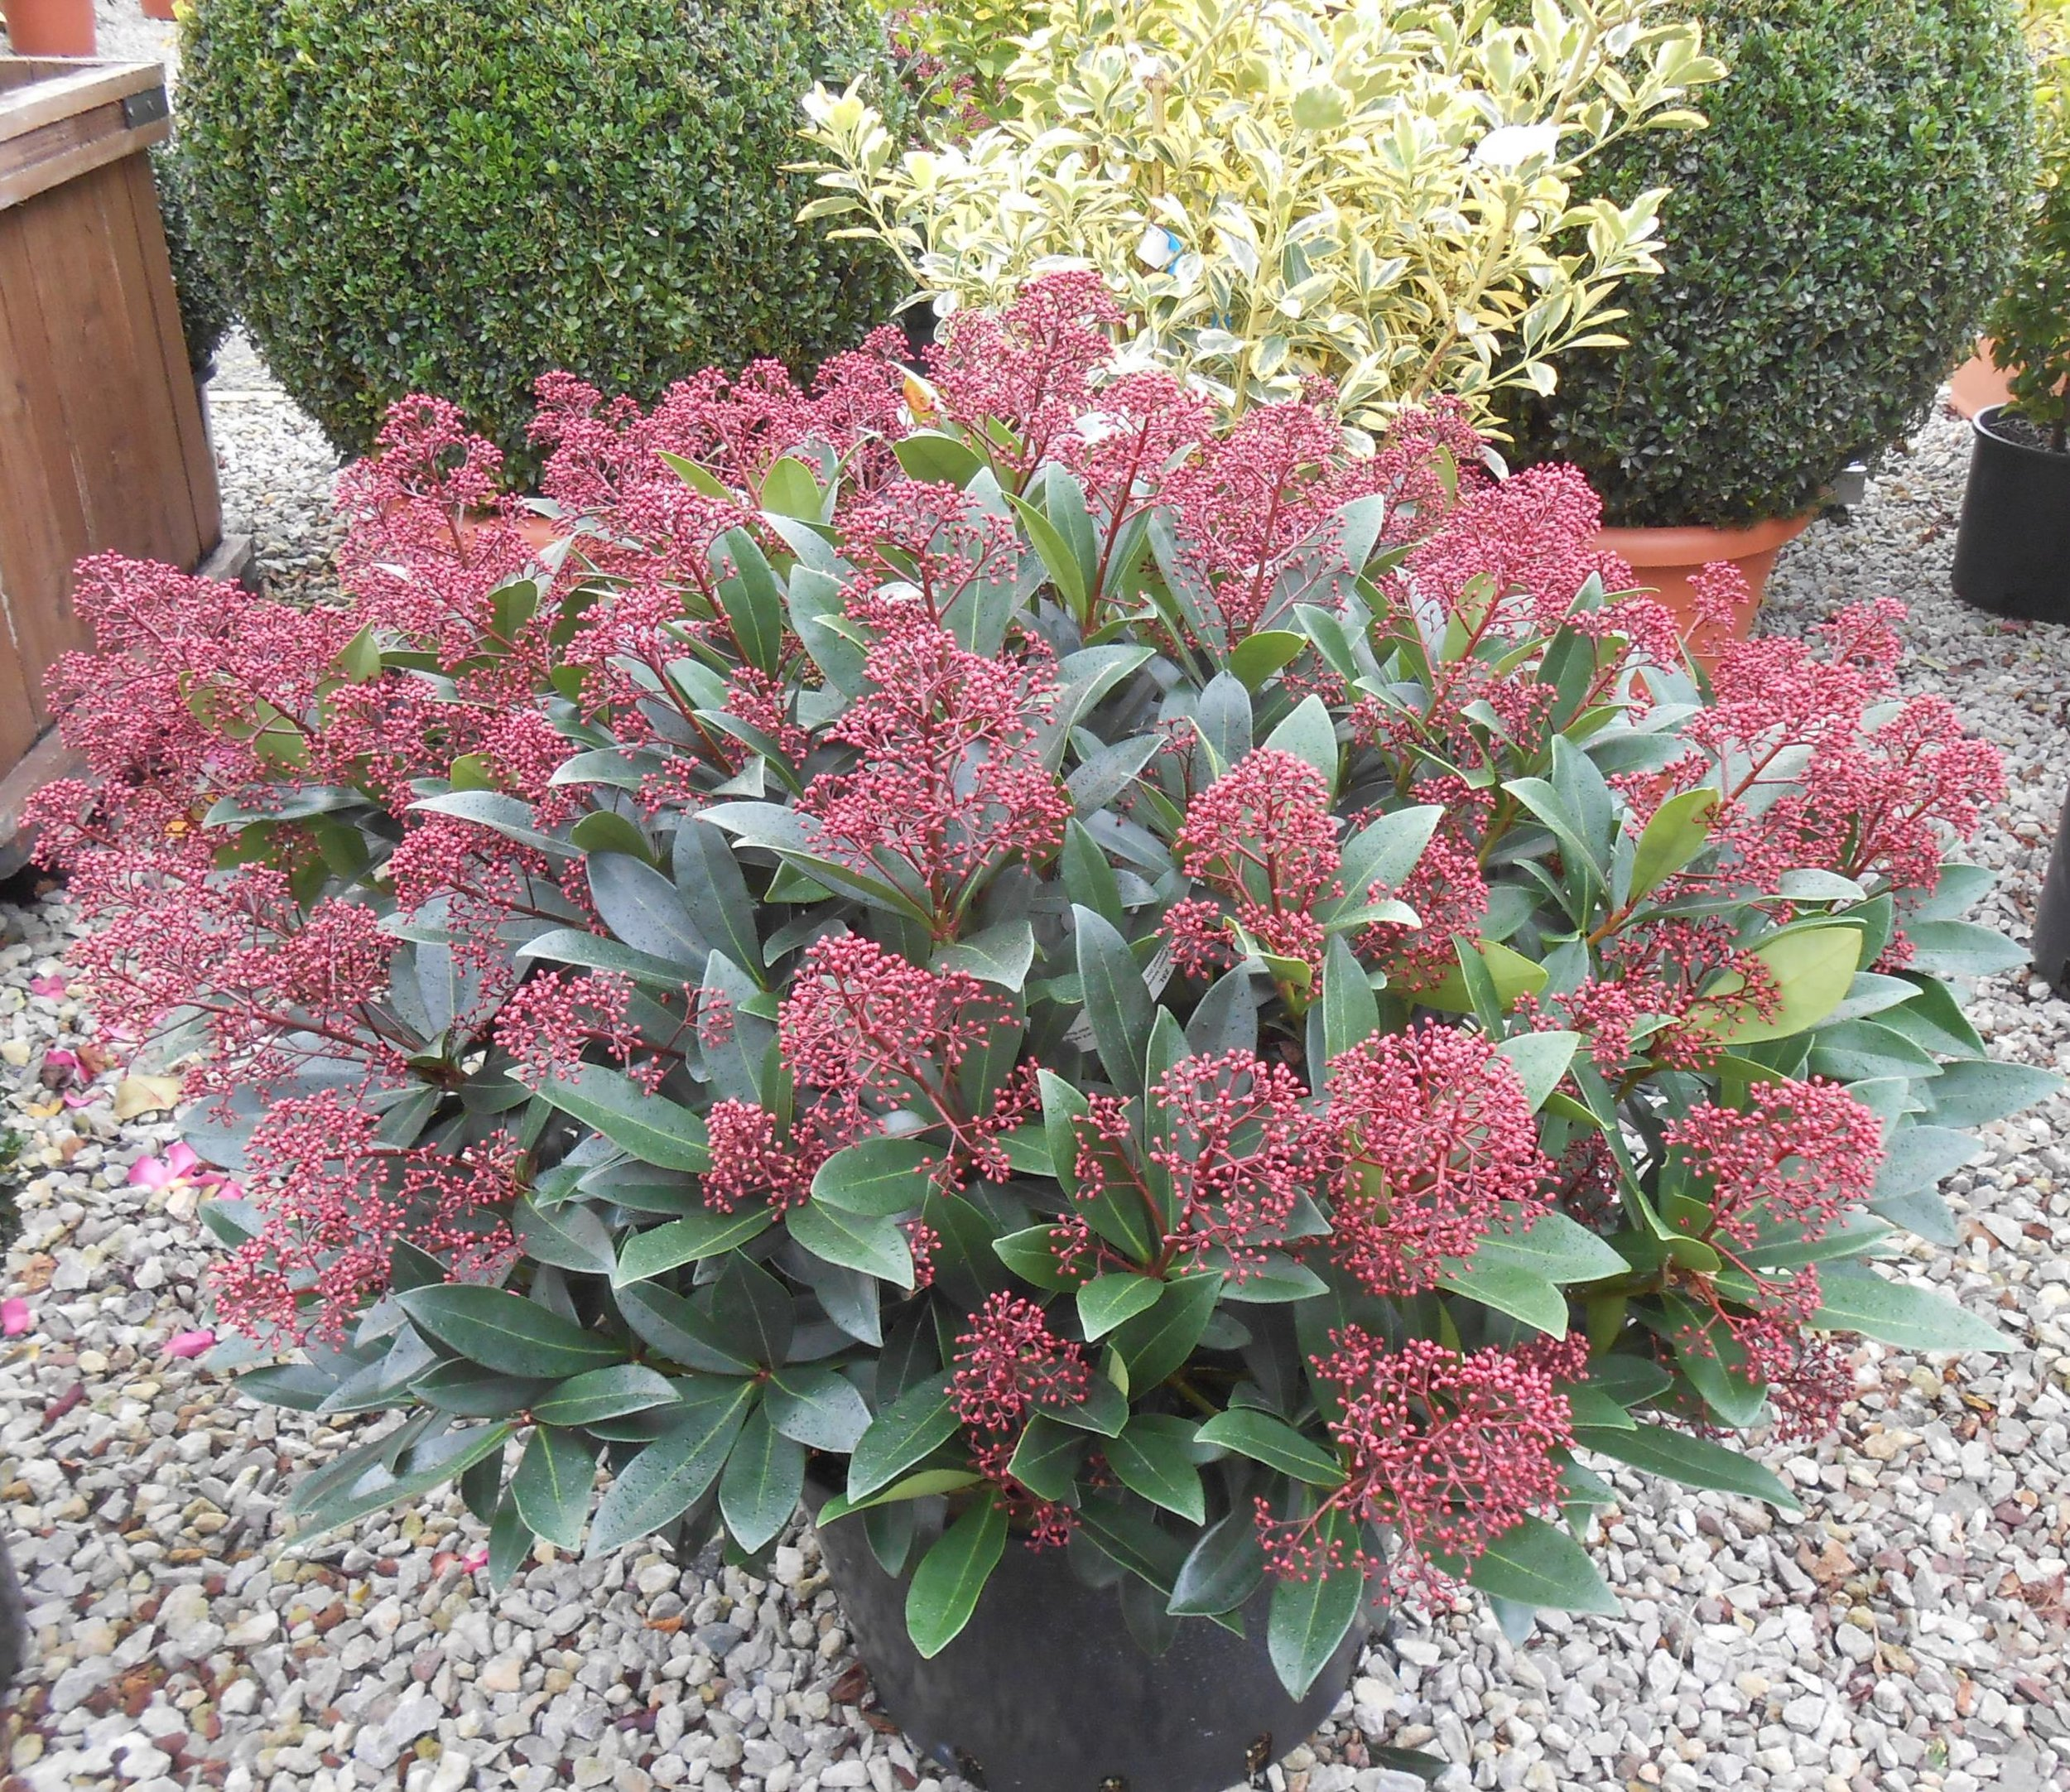 Brighten Up Your Garden This Winter With A Skimmia Japonica Anthony Dear Landscapes